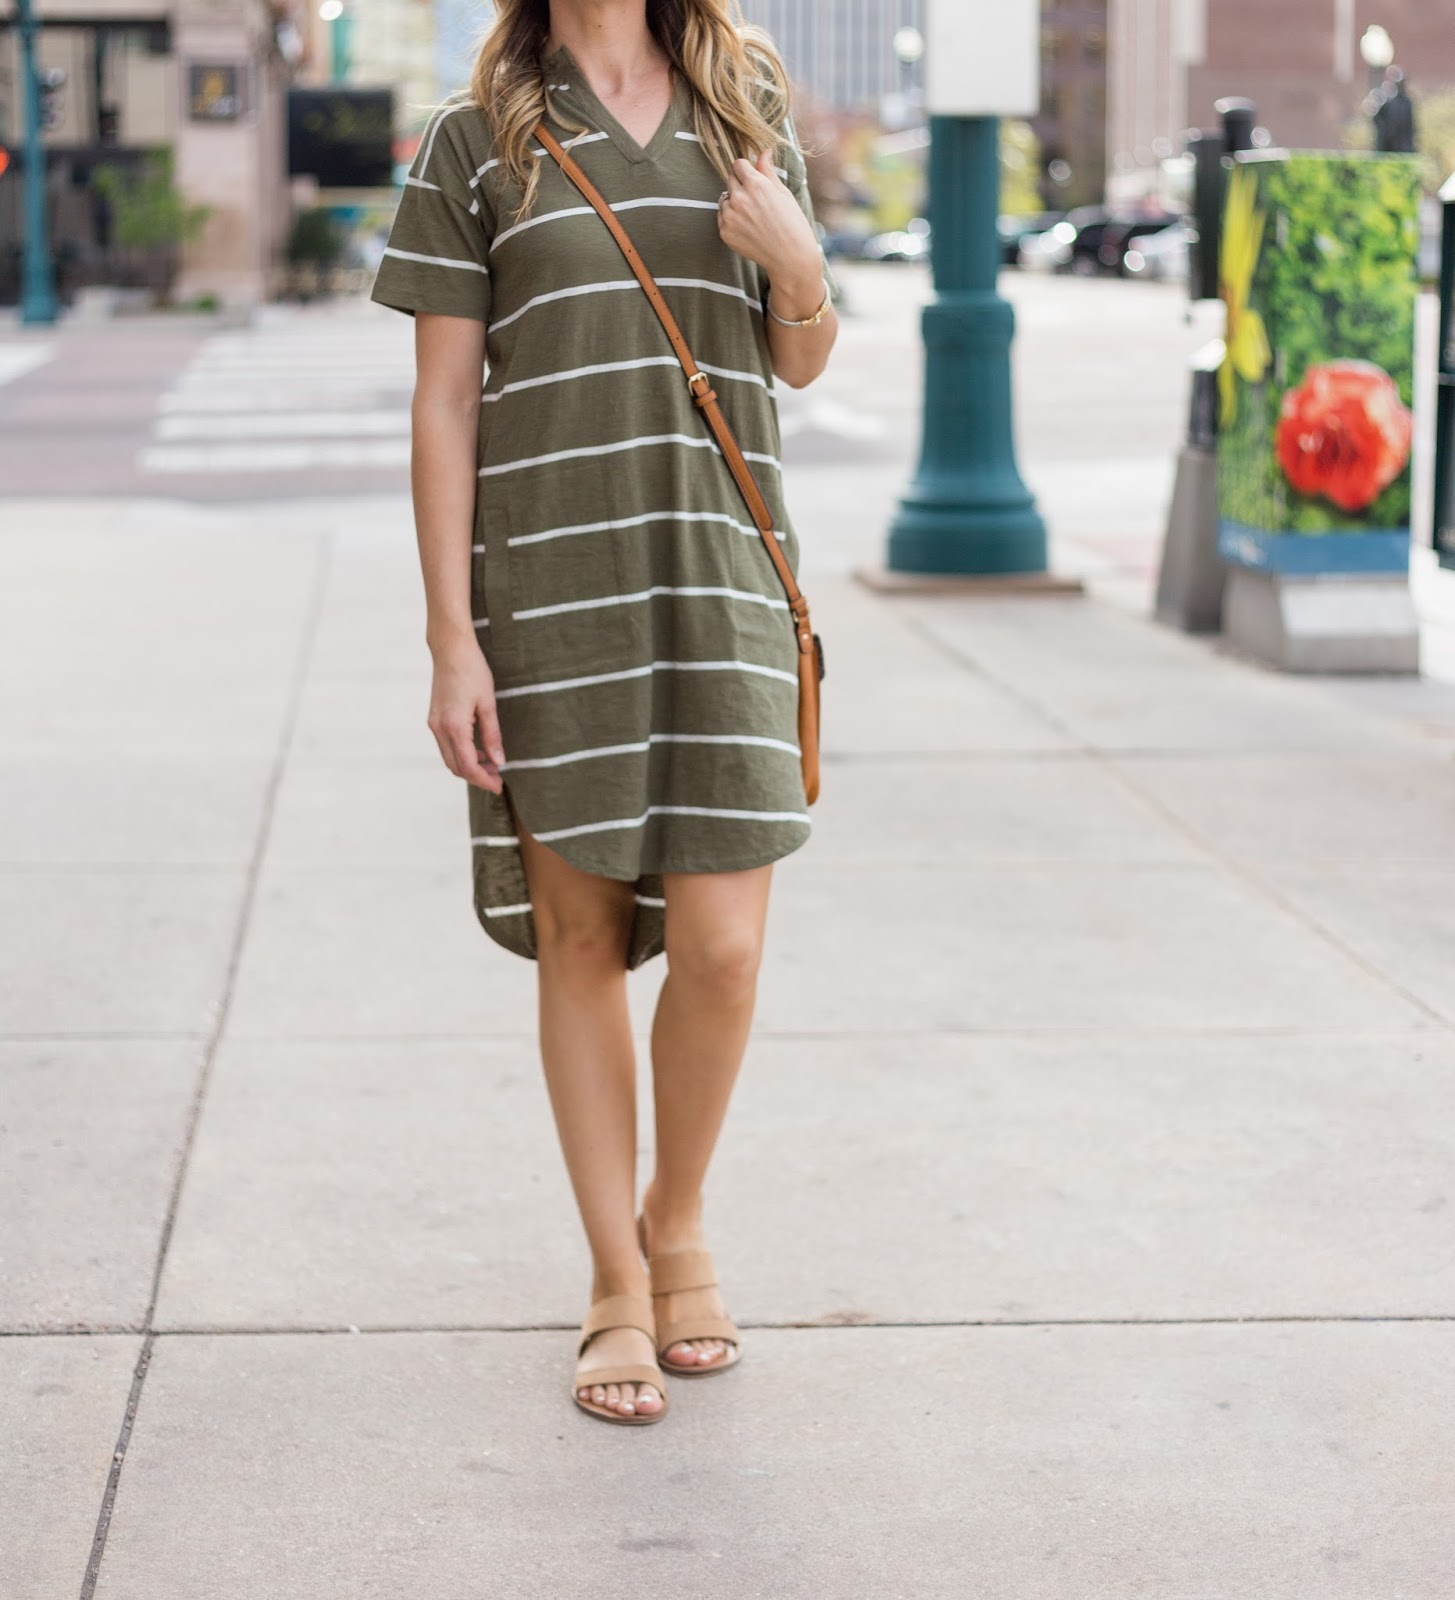 Love this striped shirt dress and crossbody together!